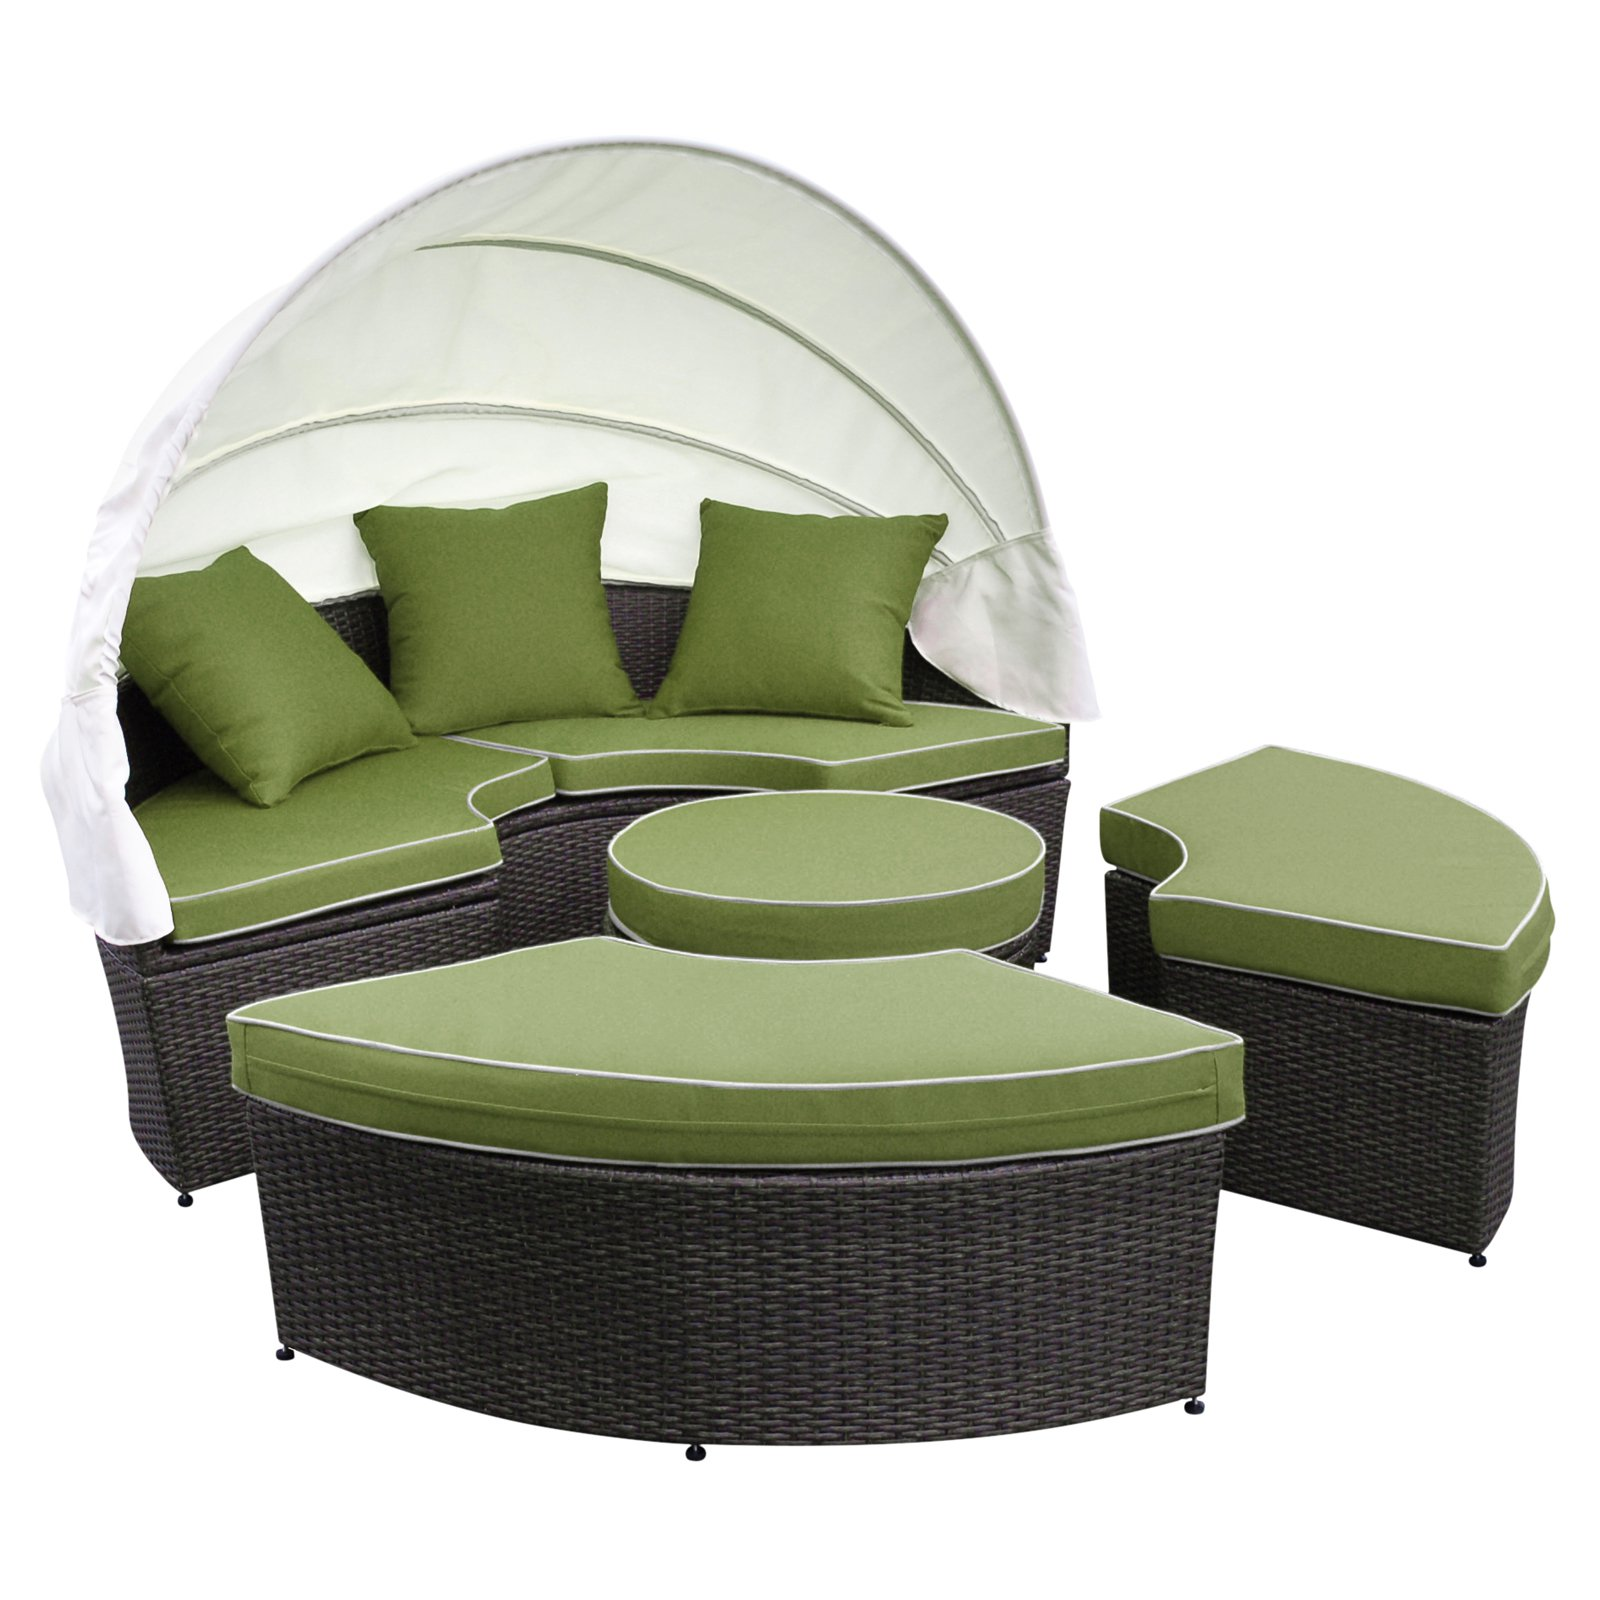 Jeco All-Weather Wicker Sectional Patio Daybed with Cushion